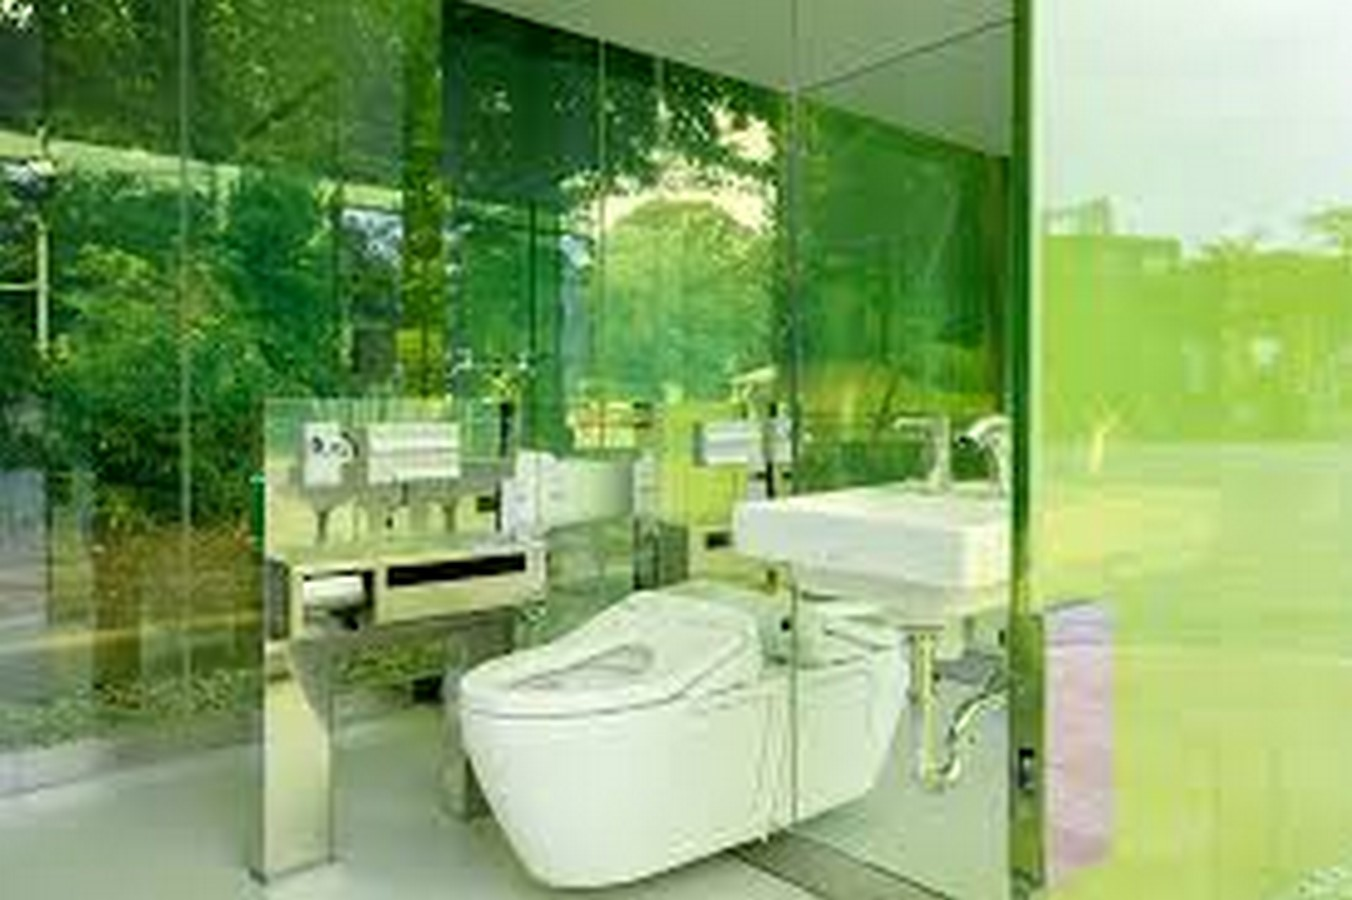 Transparent to Opaque Toilets designed by Shigeru Ban is the new highlights of Tokyo - Sheet6